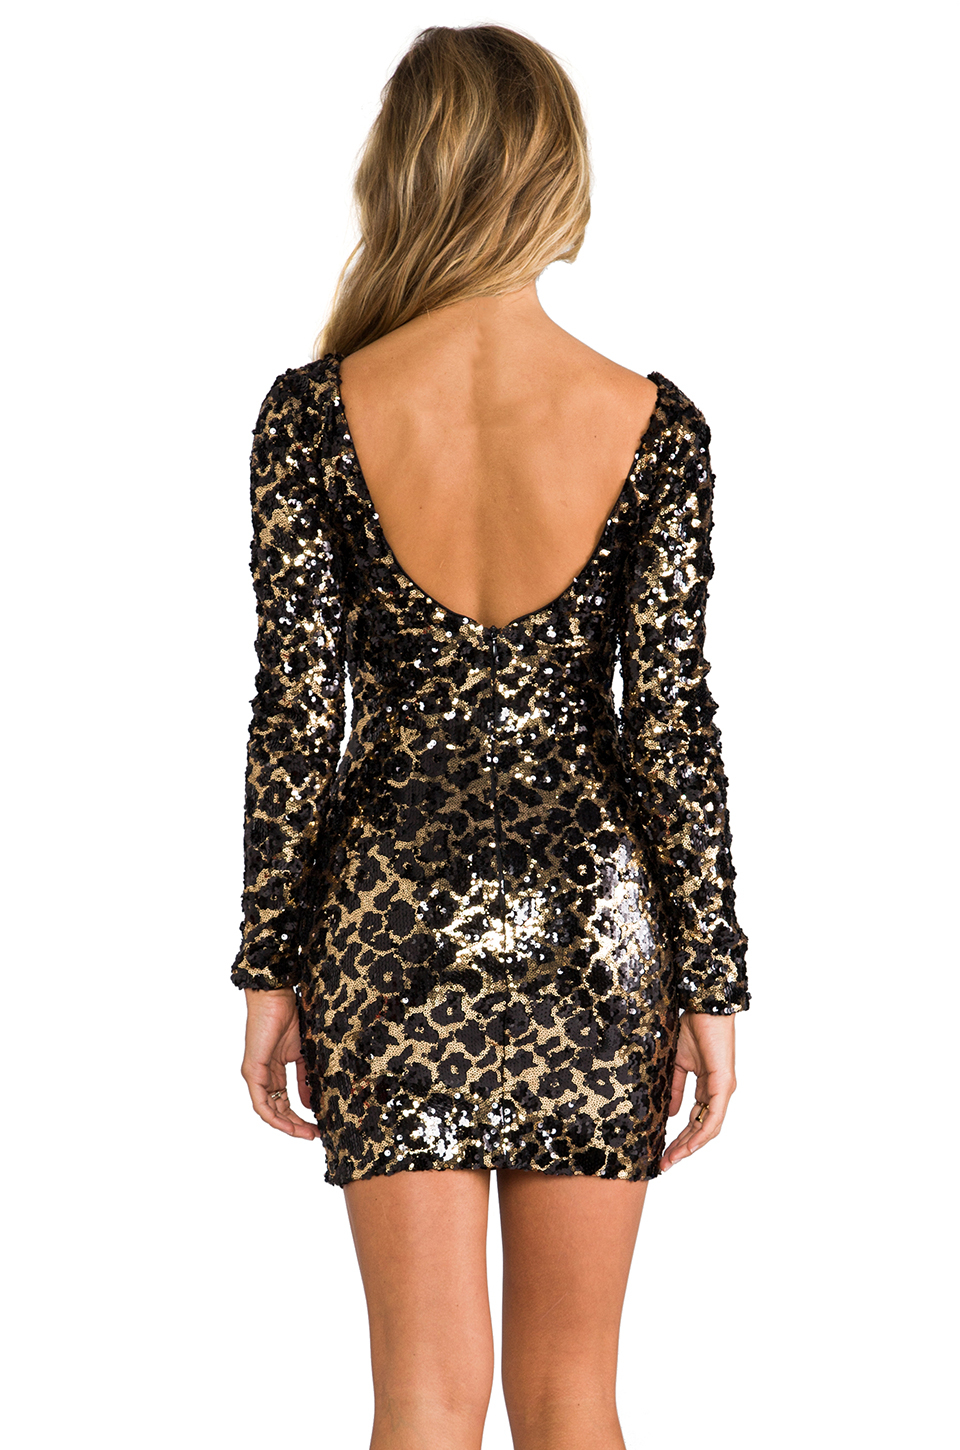 Gold sequin long sleeve dress - 863.0KB